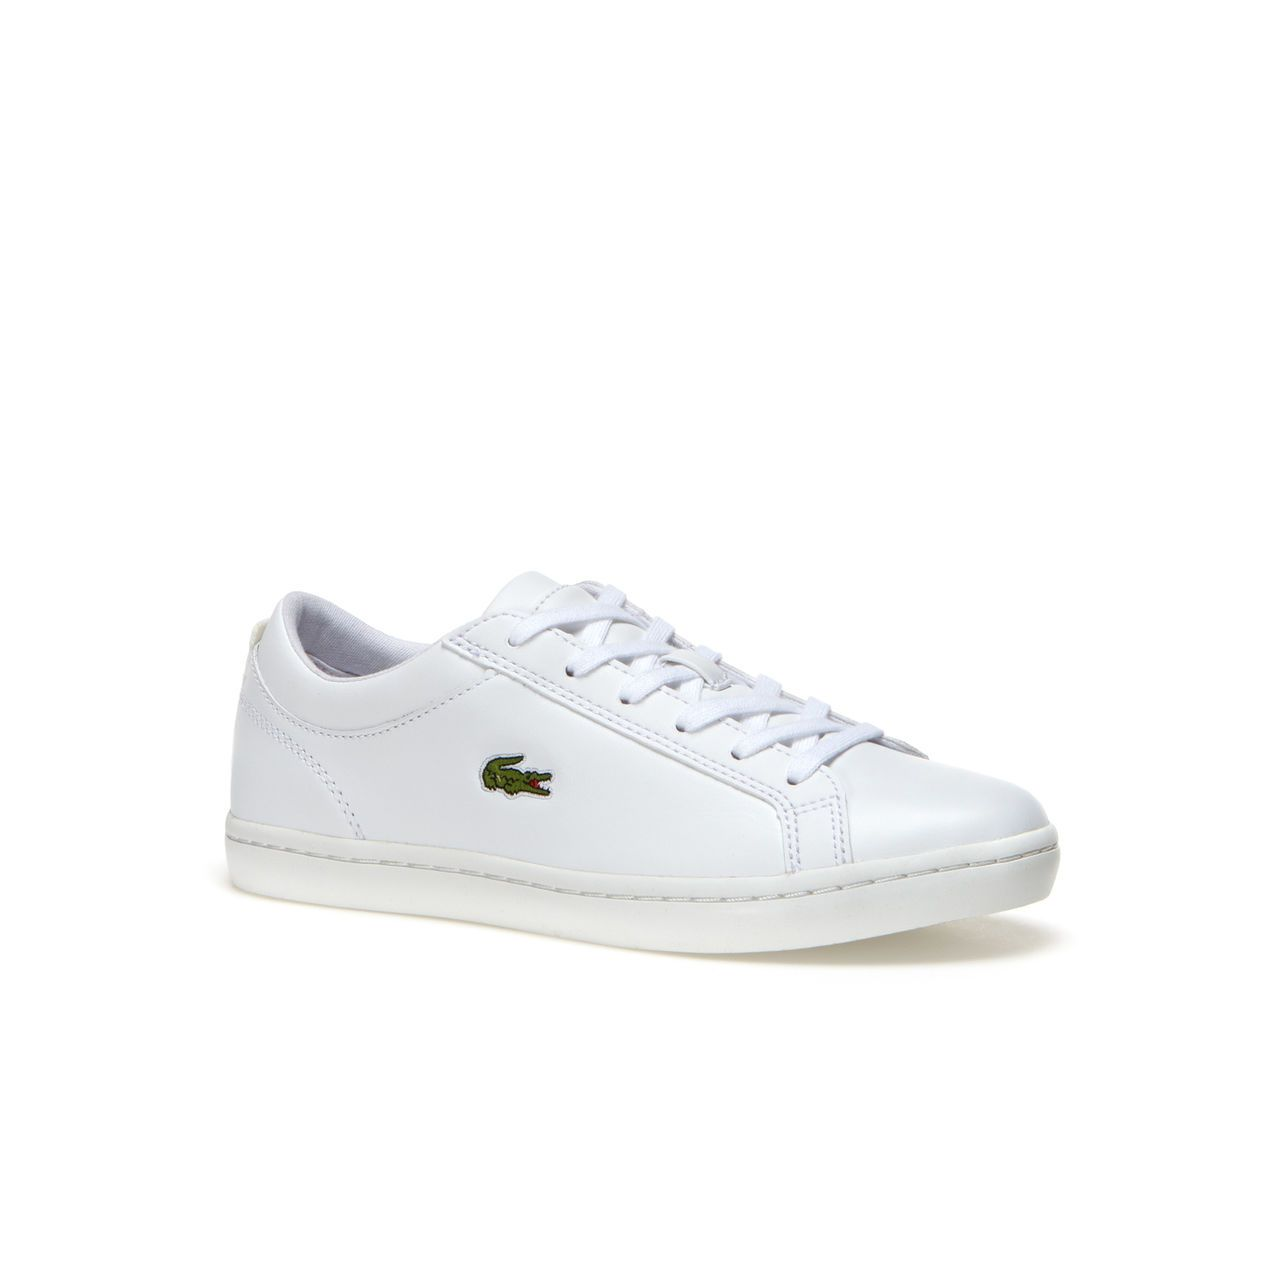 STRAIGHTSET 316 3 - CHAUSSURES - Sneakers & Tennis bassesLacoste HS5ZY